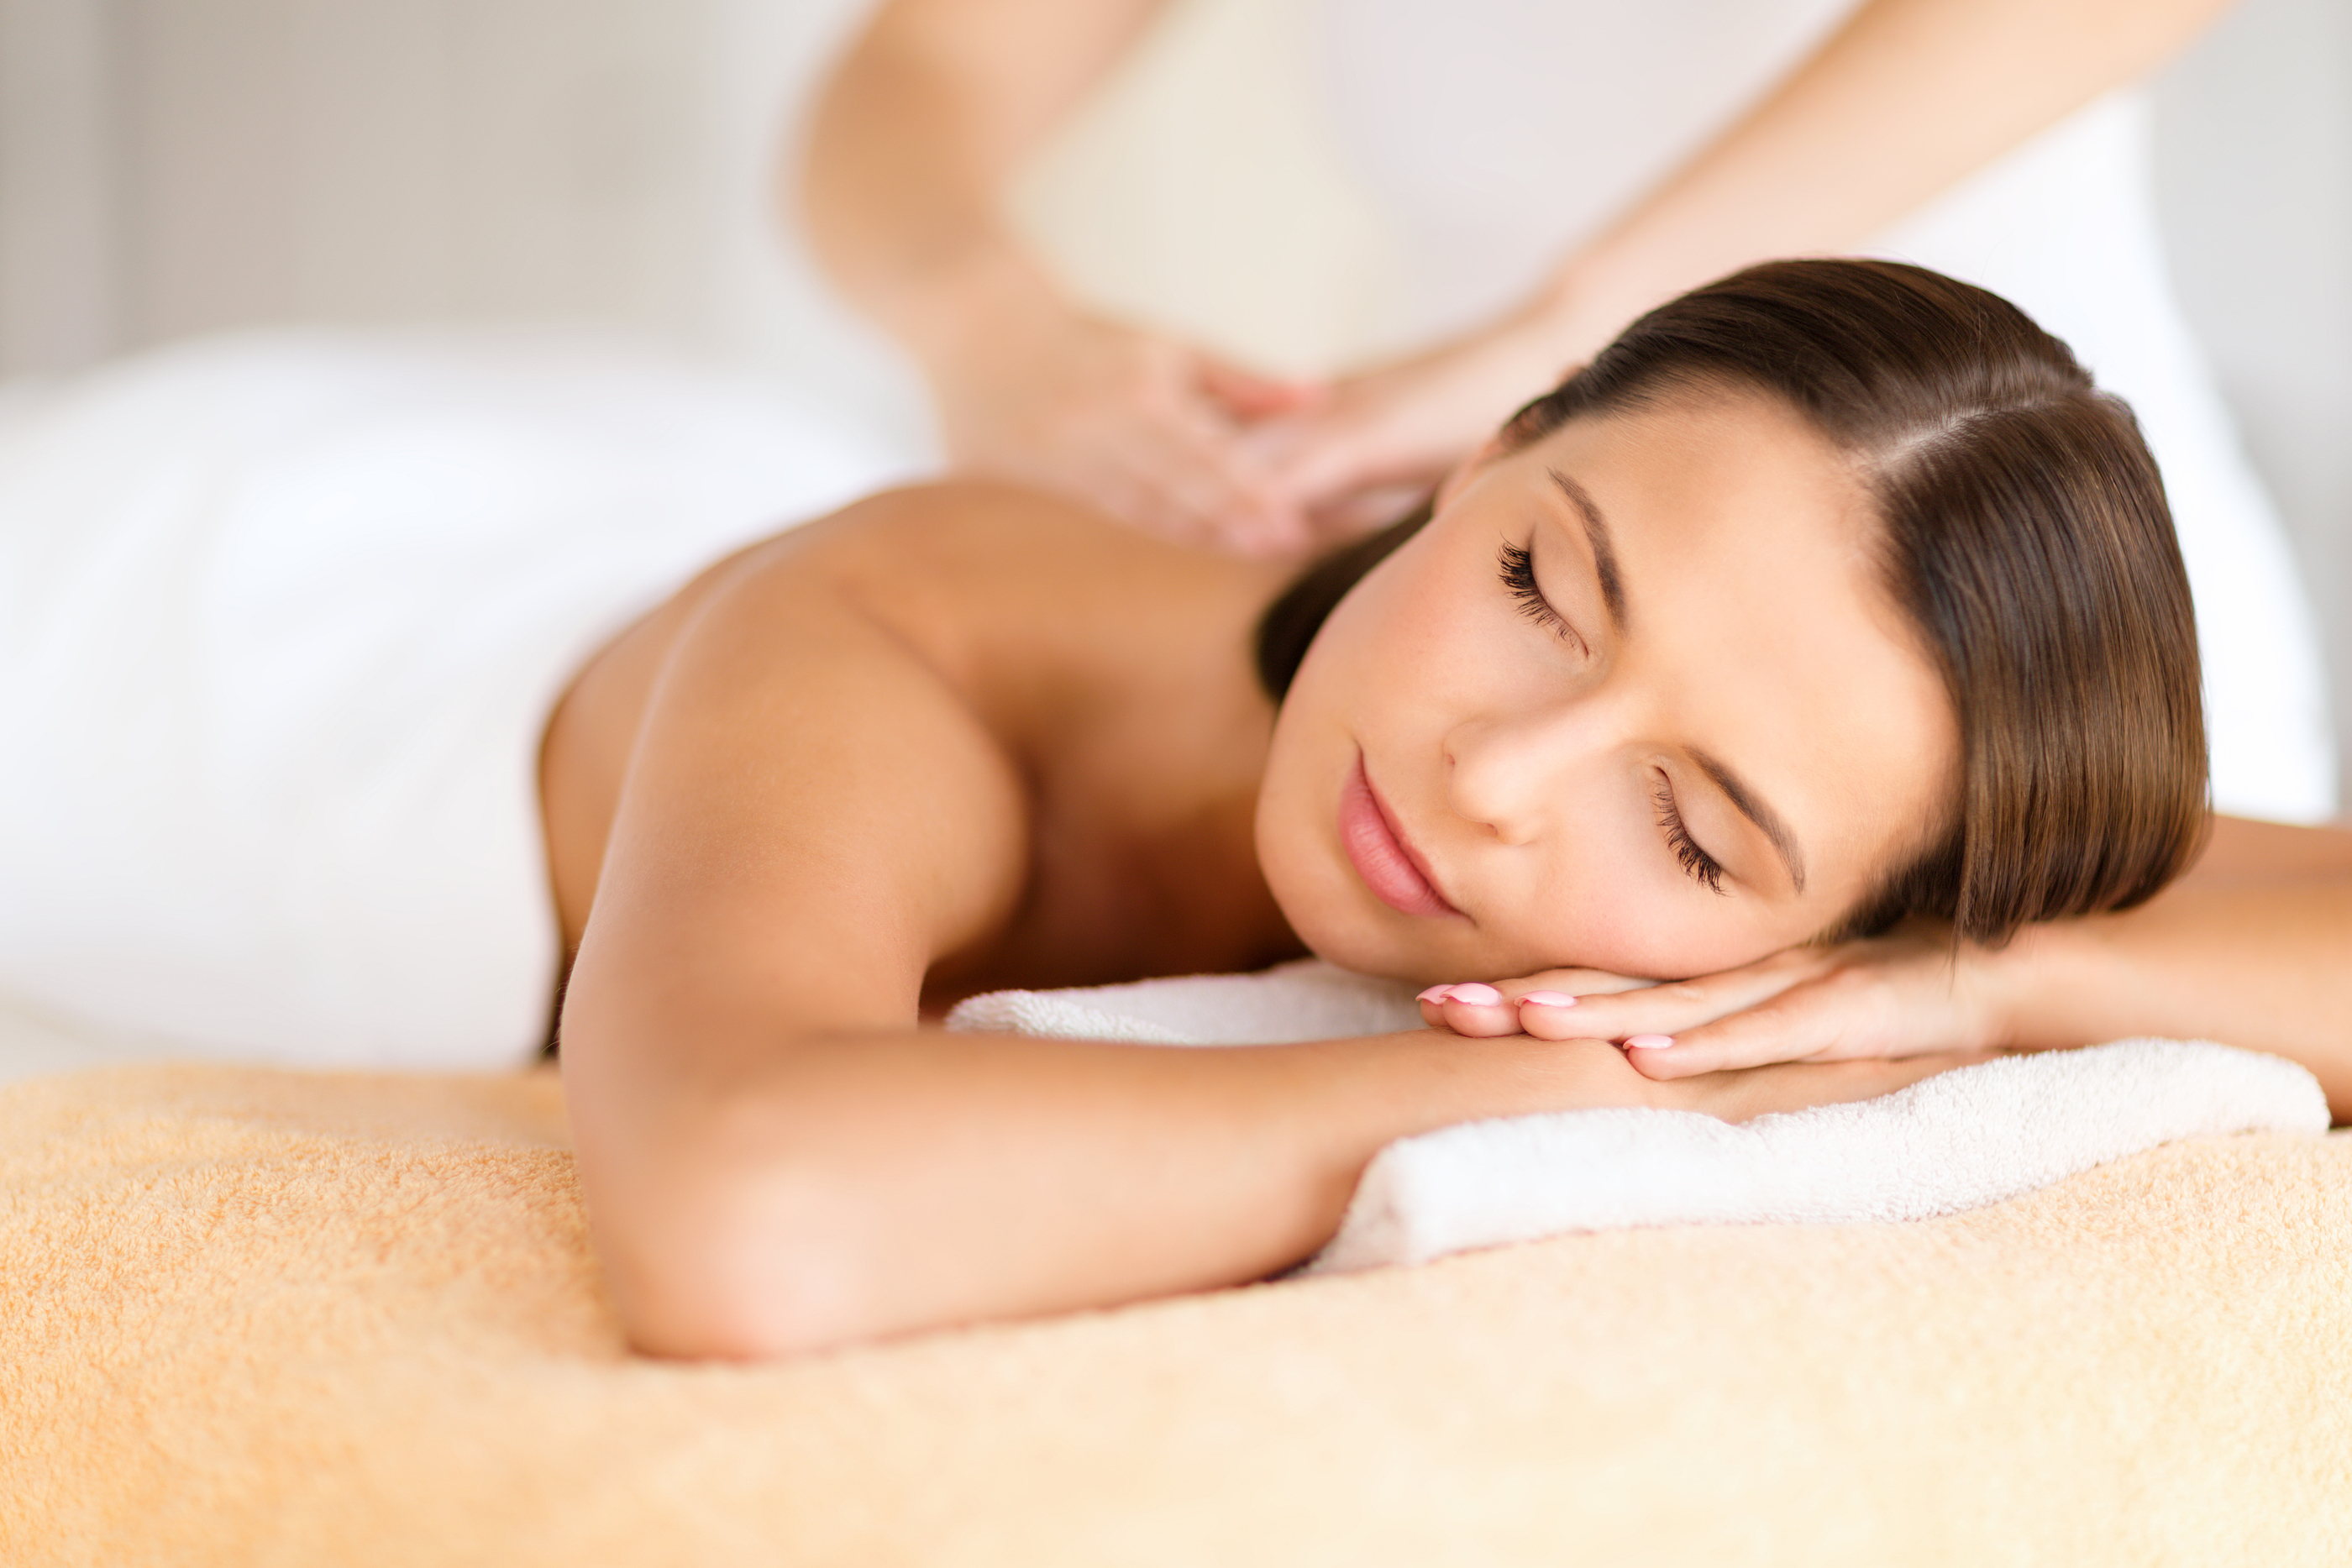 health, beauty, resort and relaxation concept - beautiful woman with closed eyes in spa salon gettin